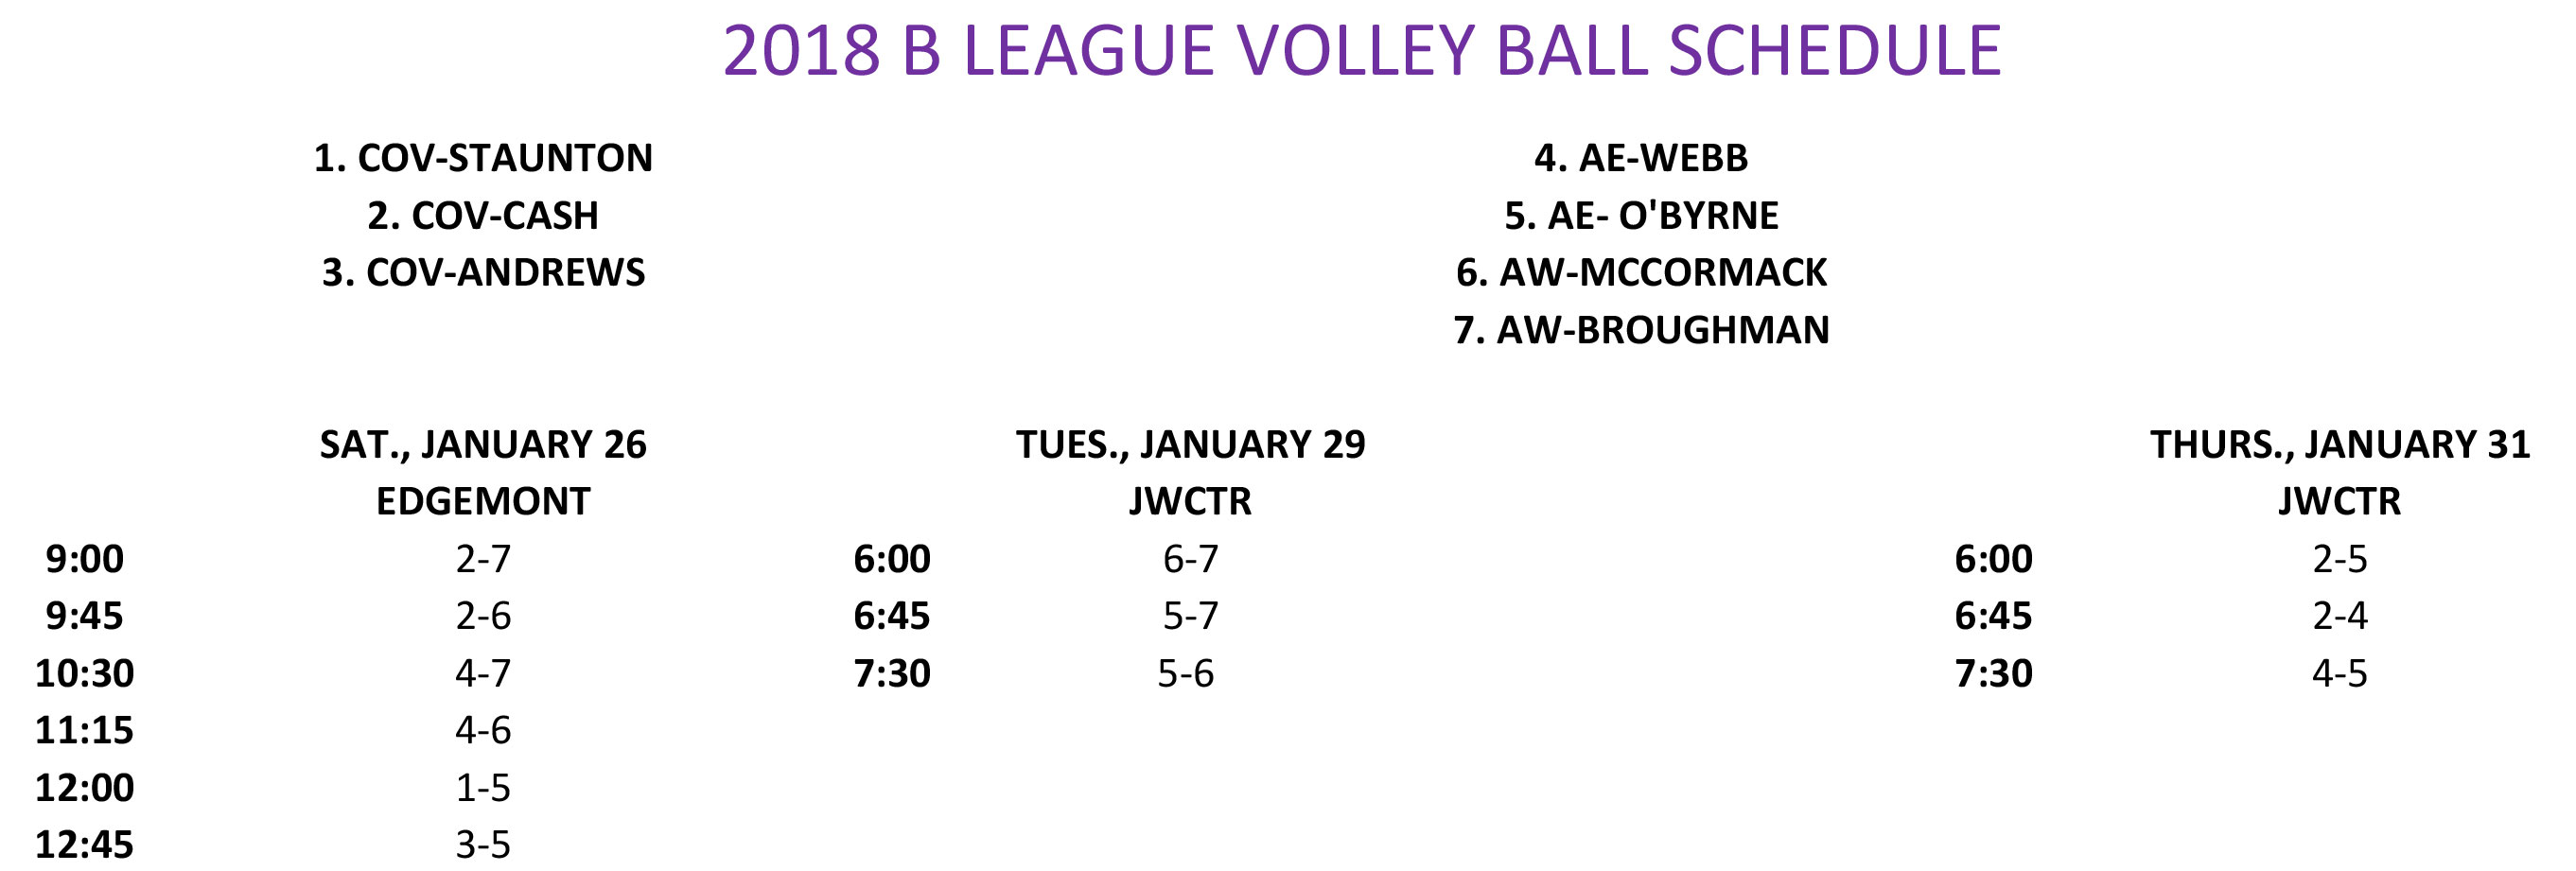 2019 B LEAGUE VOLLEYBALL SCHEDULE 2